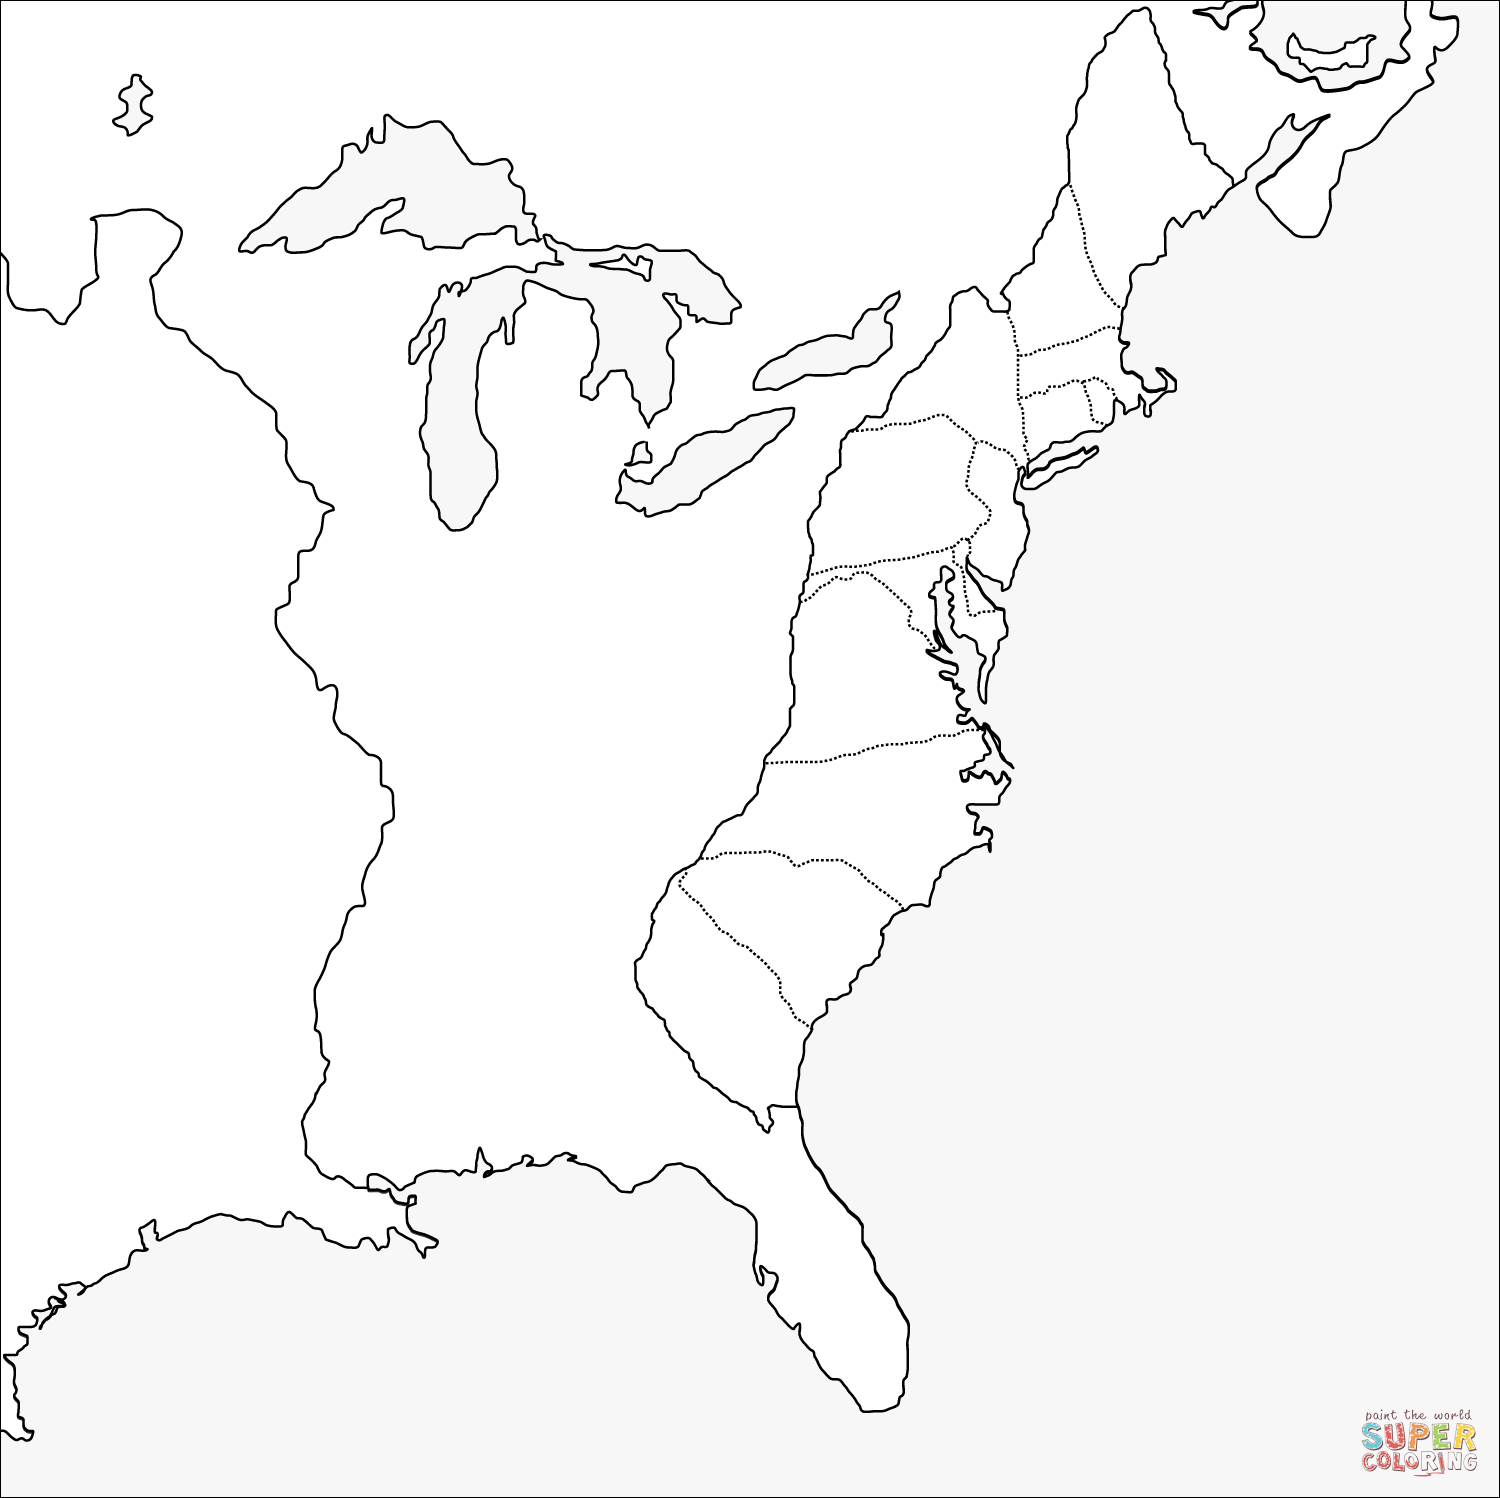 13 Colonies Drawing At Getdrawingscom Free For Personal Use 13 - Us-map-13-colonies